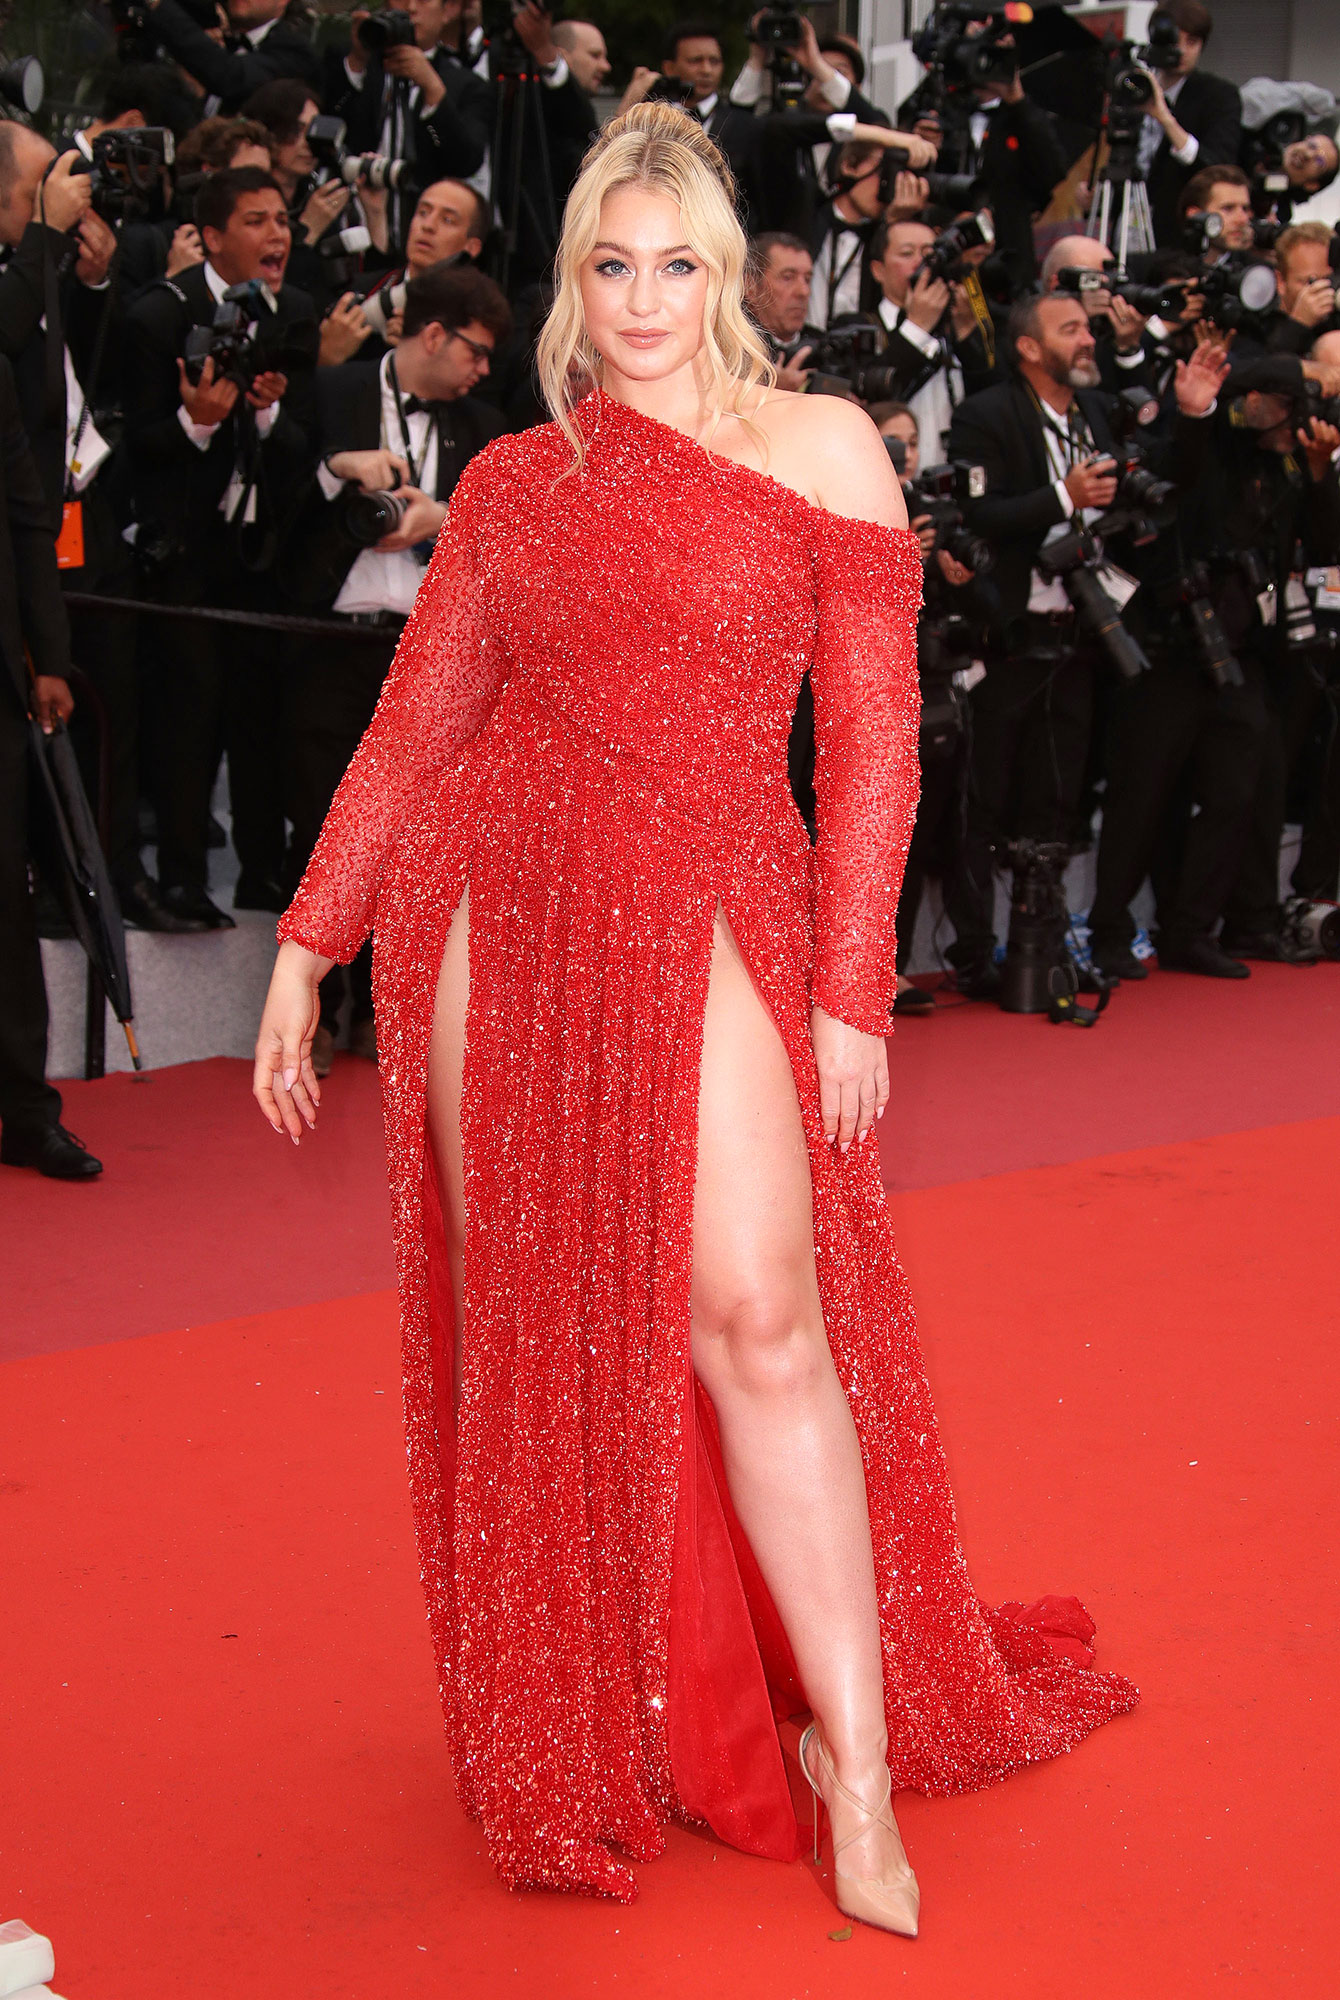 Iskra Lawrence Stepping Out in Style at Cannes Film Festival - The model was red hot on the red carpet in a shimmering Valdrin Sahiti gown and Christian Louboutin pumps at the Les Plus Belles Annees D'Une Vie screening on Saturday, May 18.